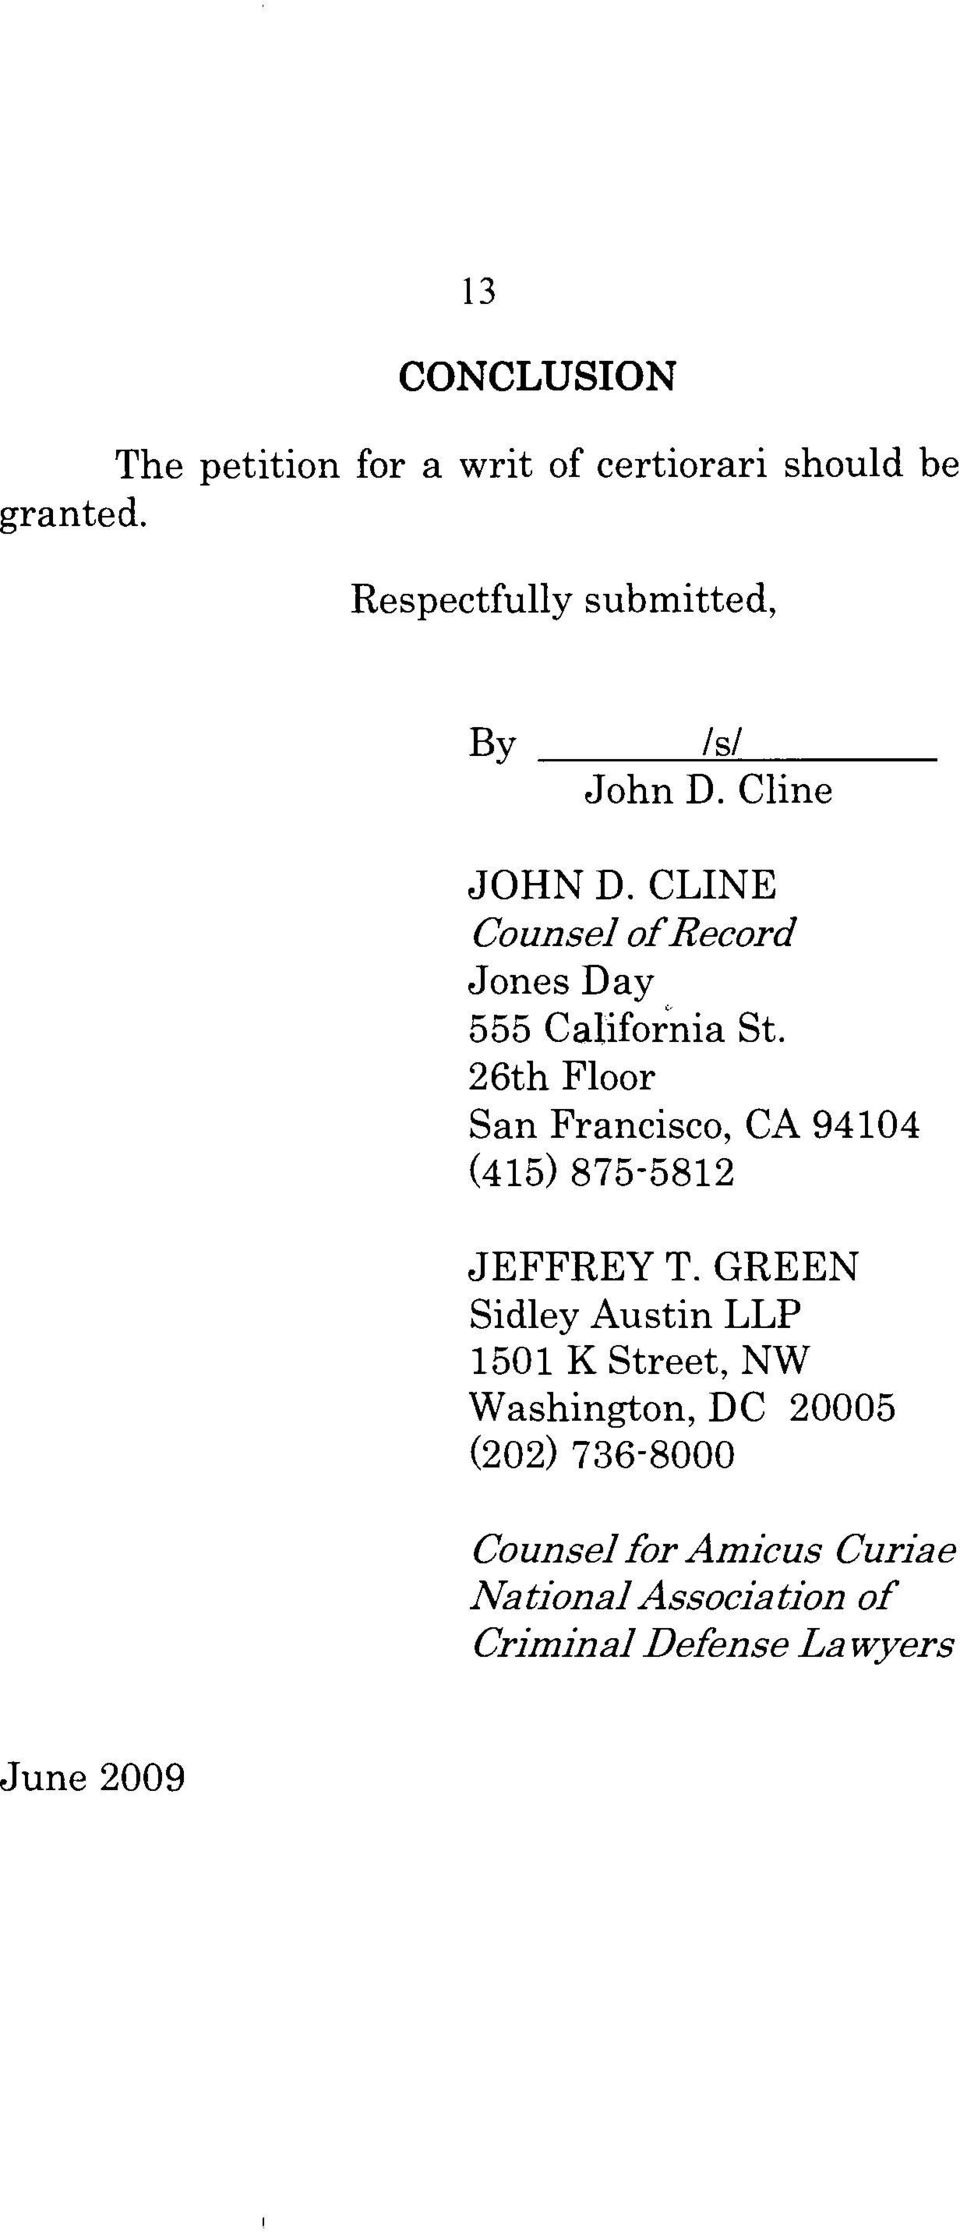 CLINE Counsel of Record Jones Day 555 Cafifo~:nia St.